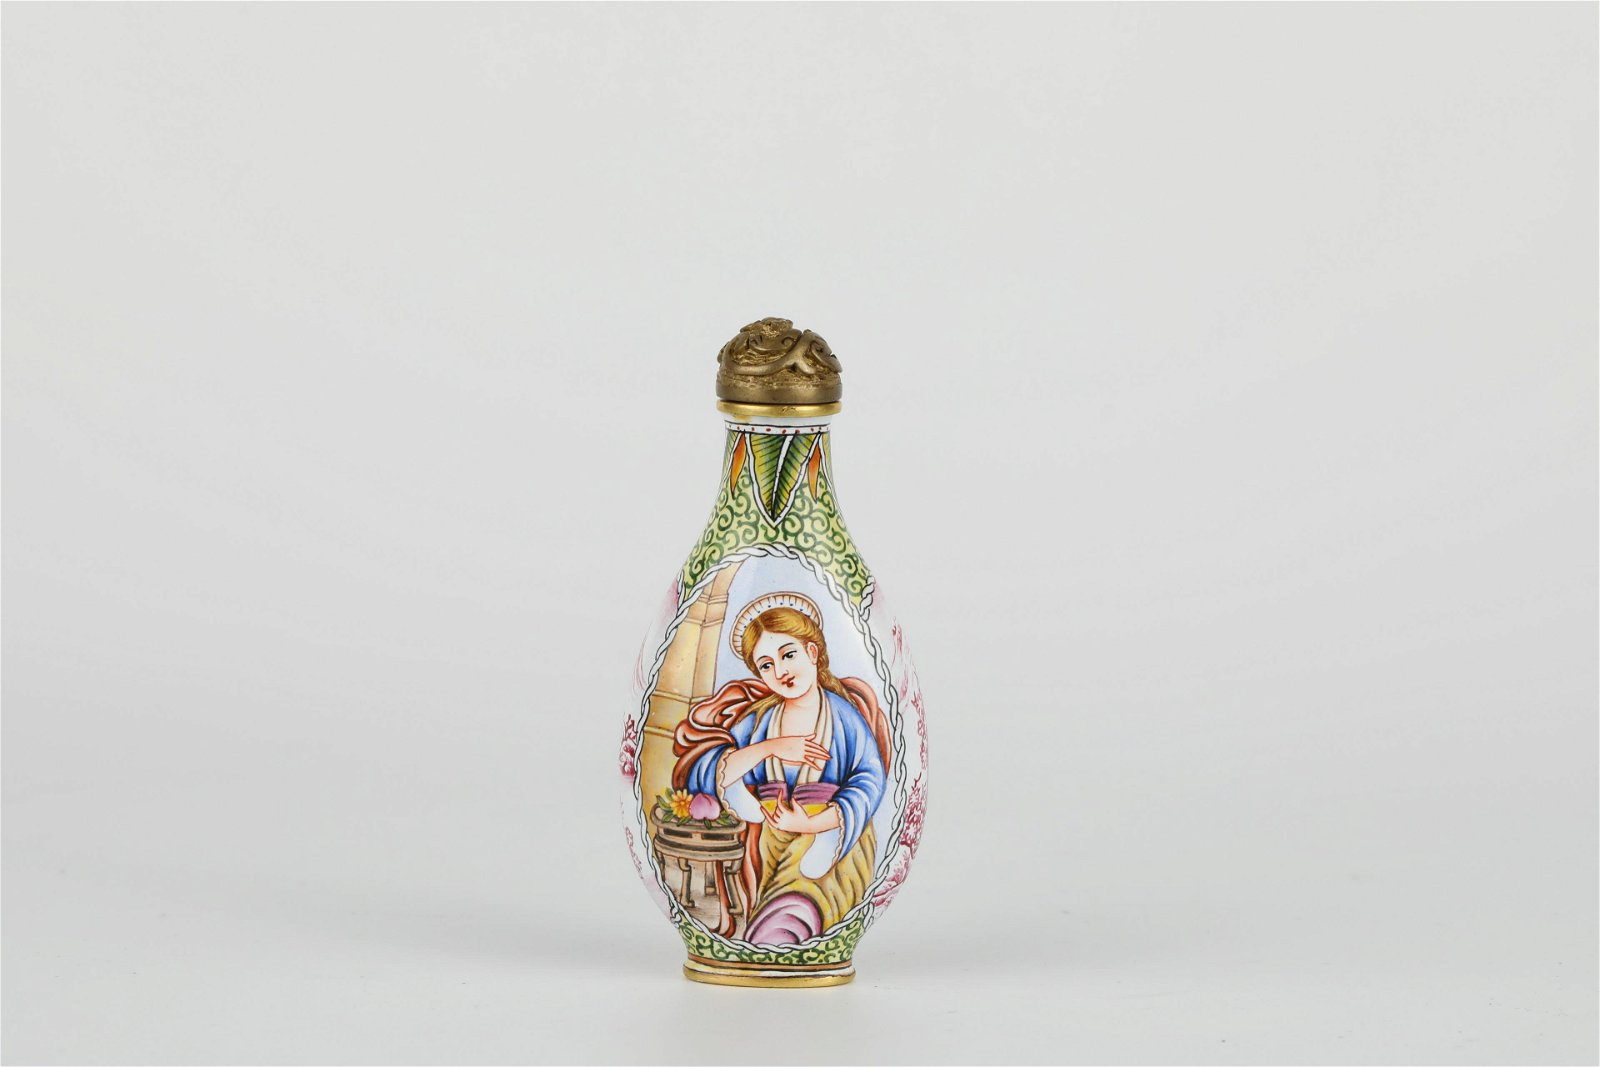 Enamelled snuff bottle figures painted on copper body